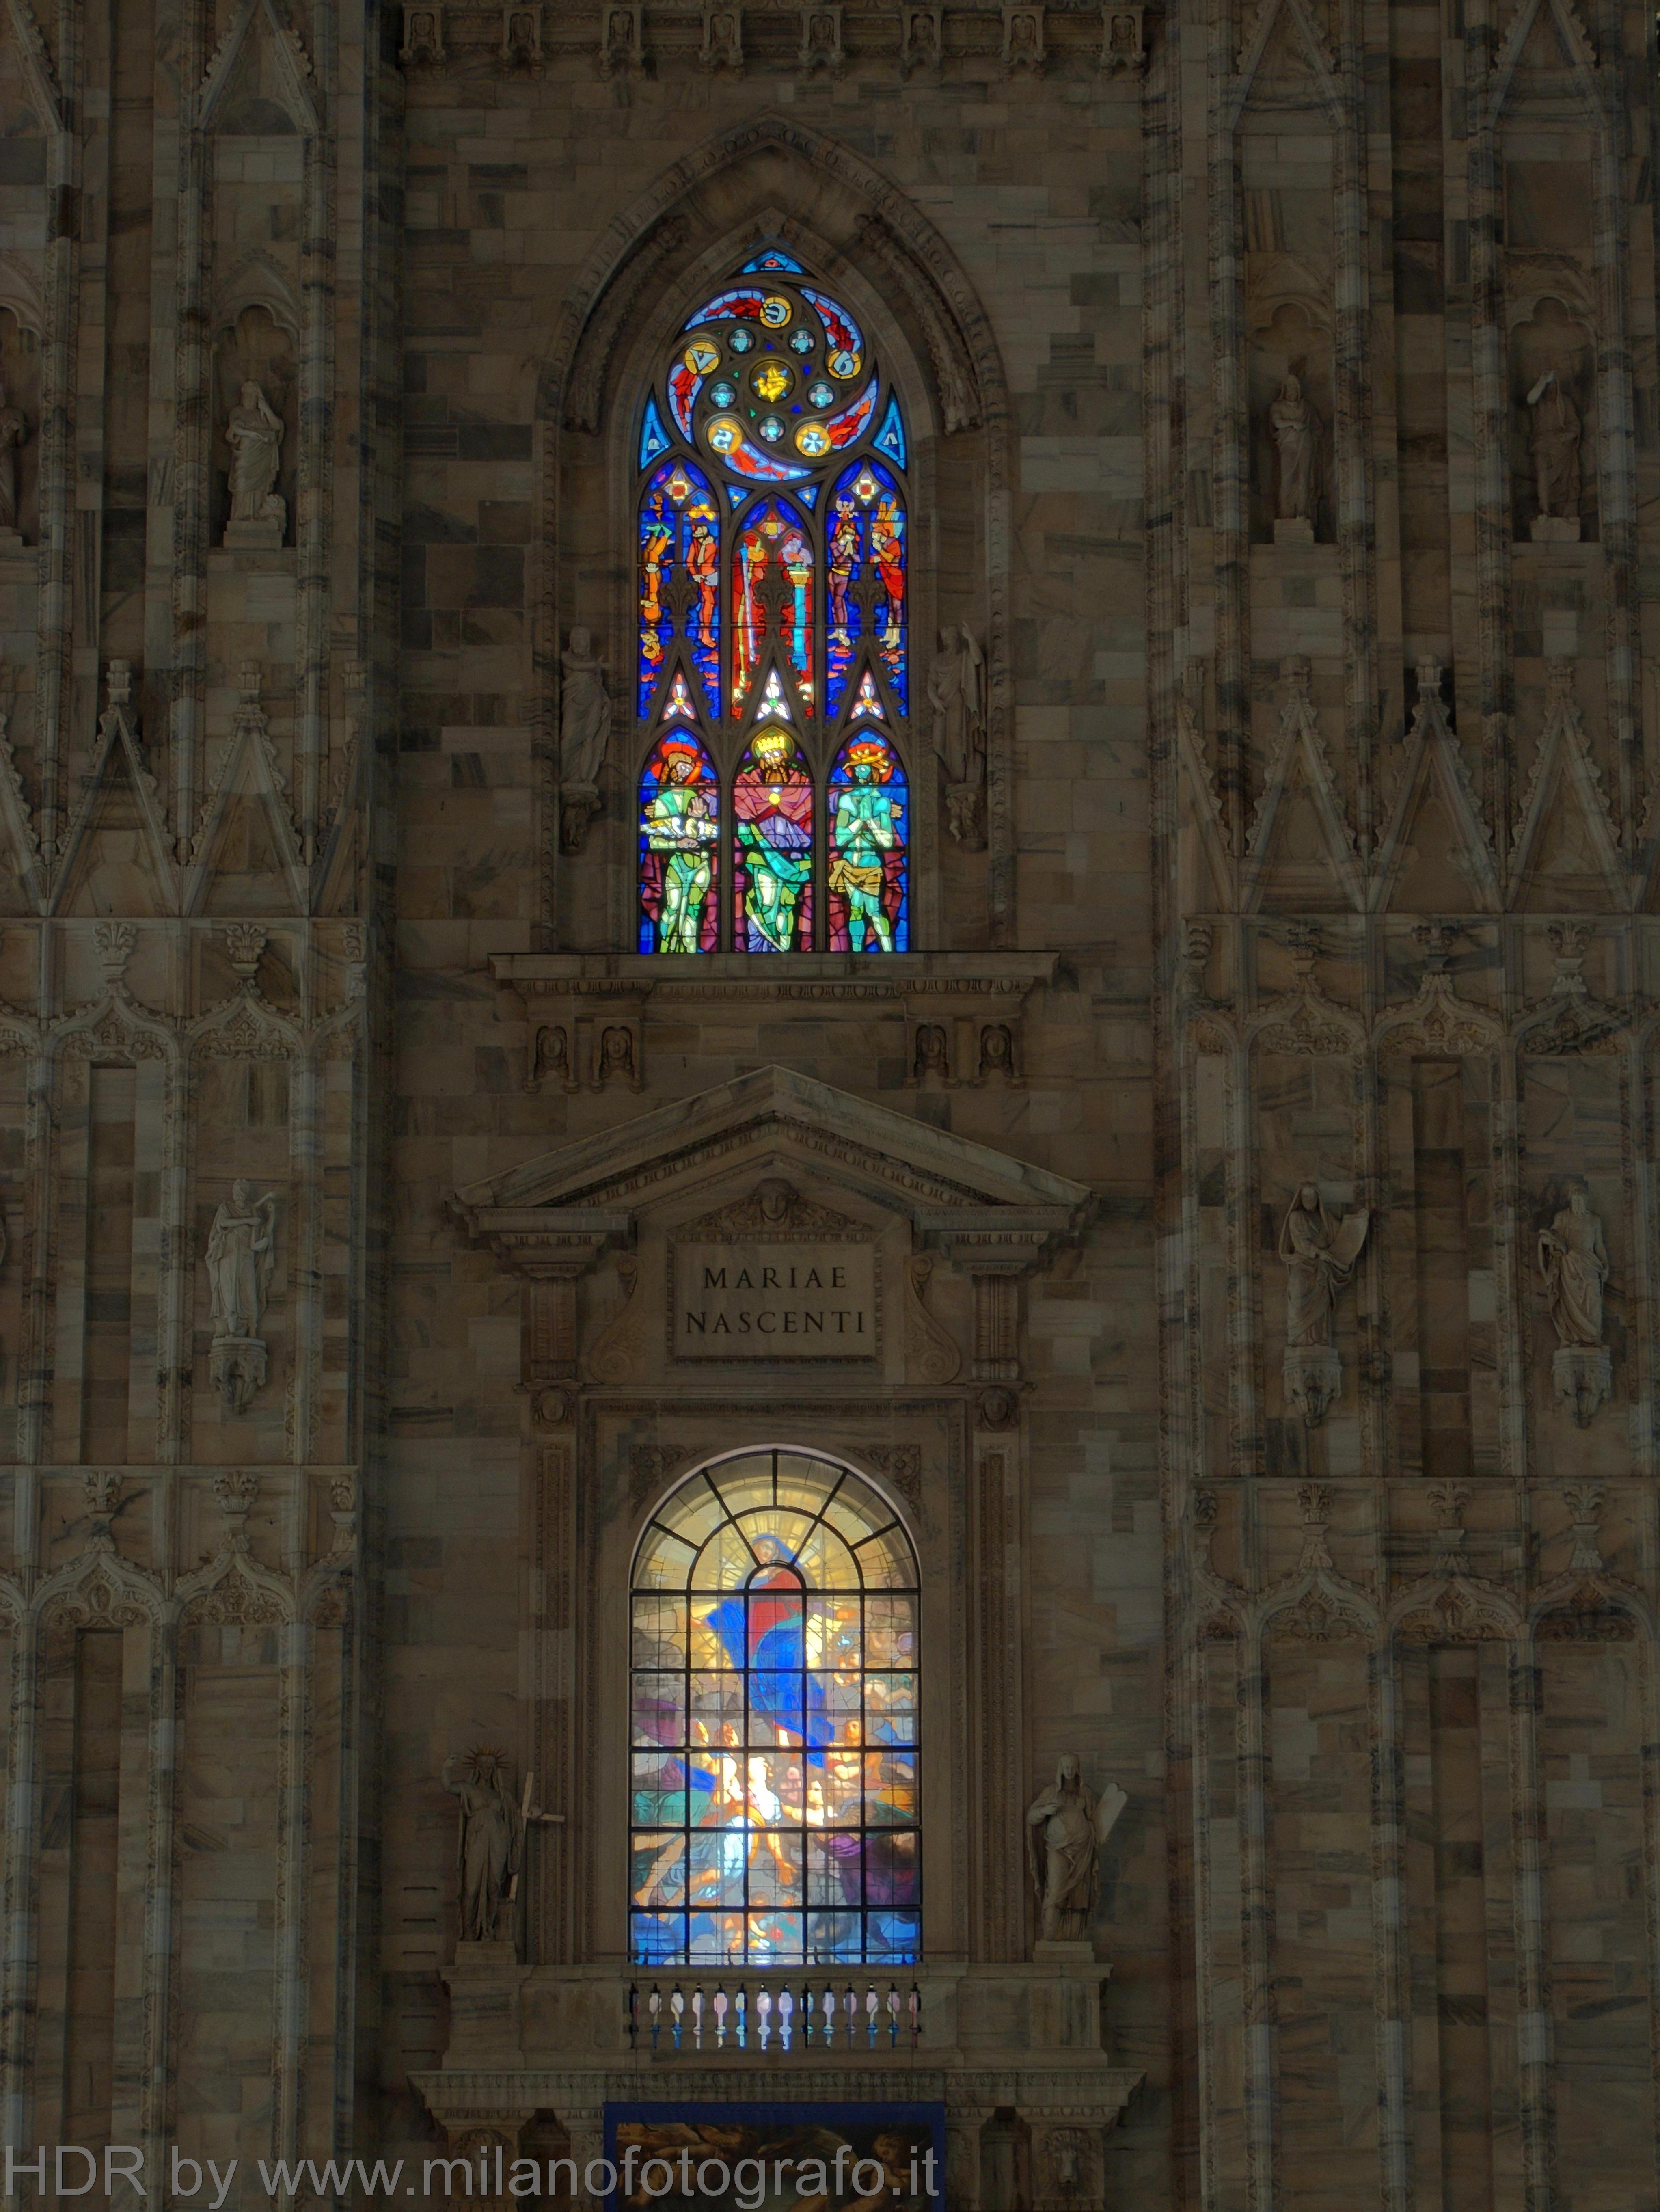 Milan (Italy): Two windows of the facade of the Duomo - Milan (Italy)